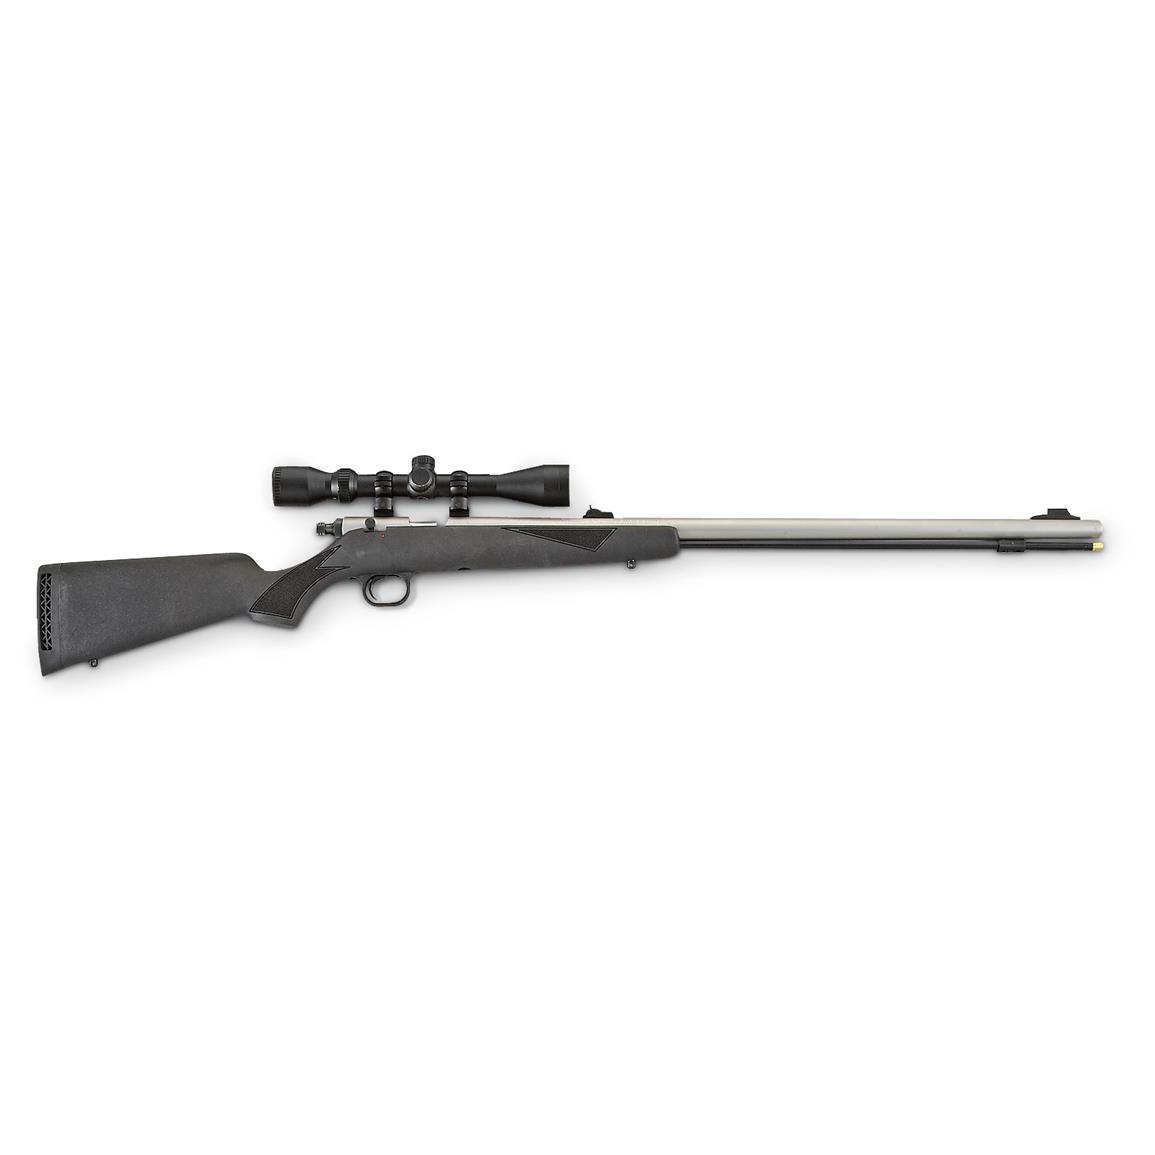 Bighorn .52 cal. Muzzleloader Rifle with 3-9x40mm Scope Package